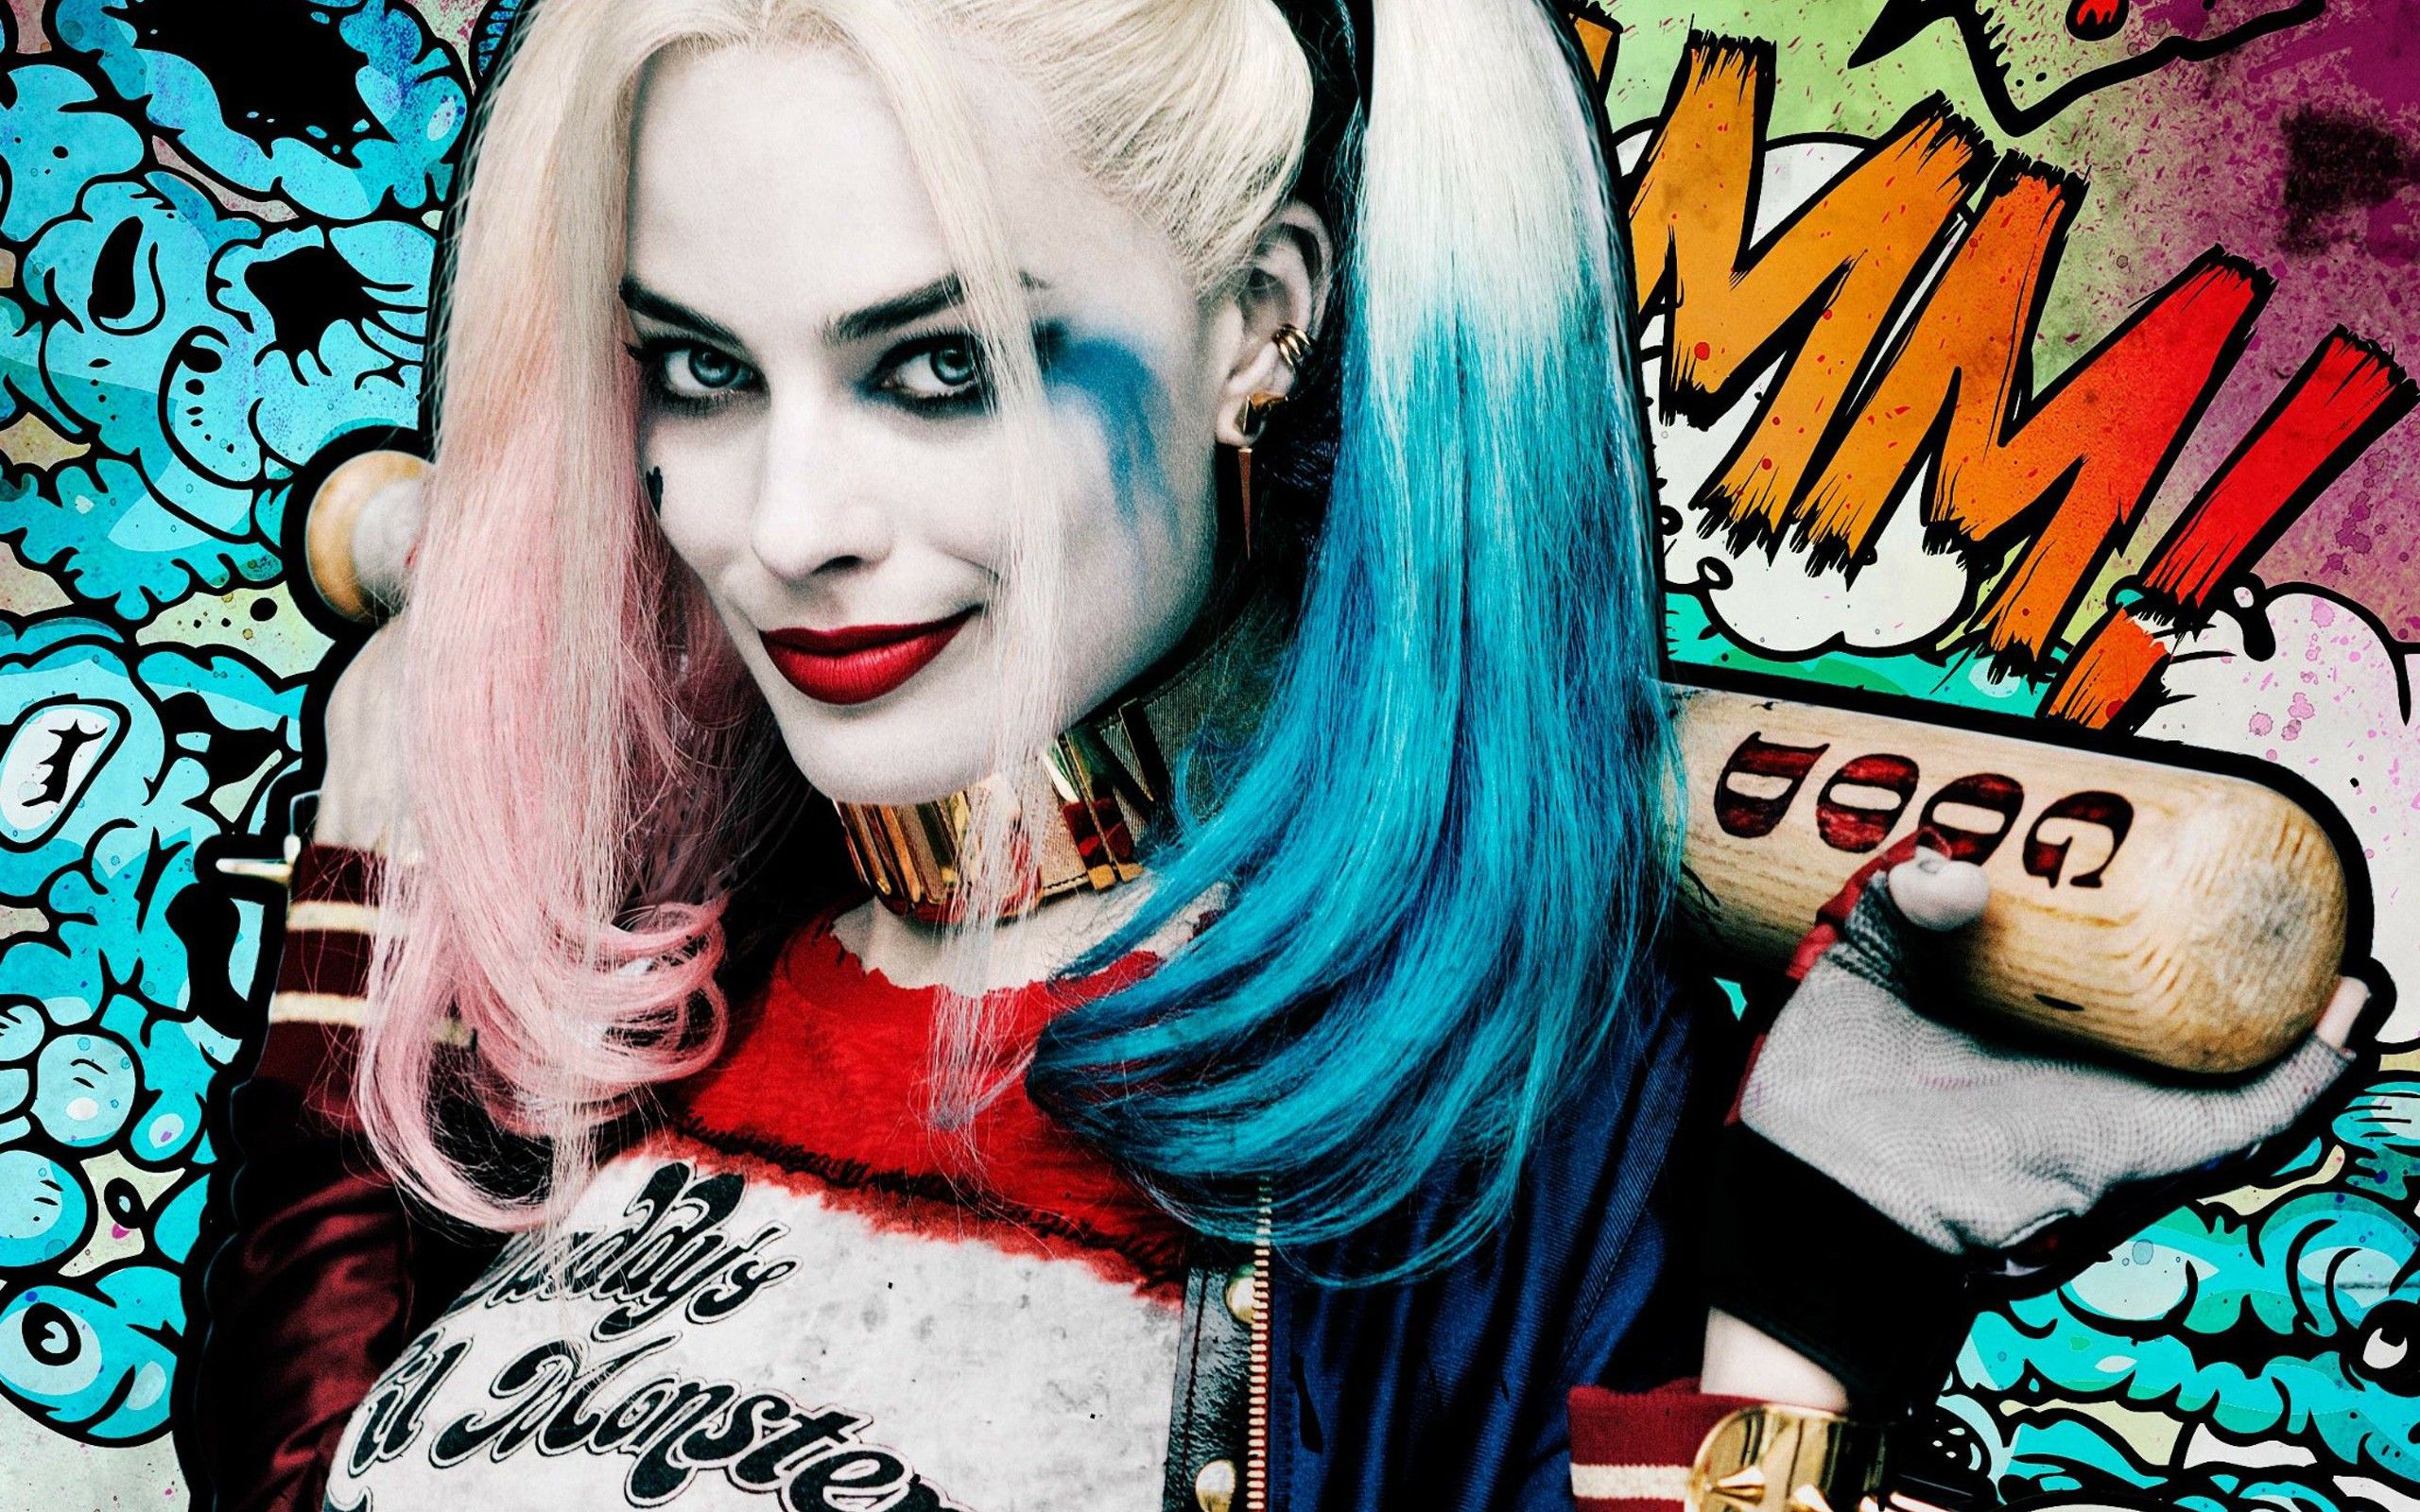 2560x1600 Suicide Squad images Harley Quinn HD wallpaper and background photos ...